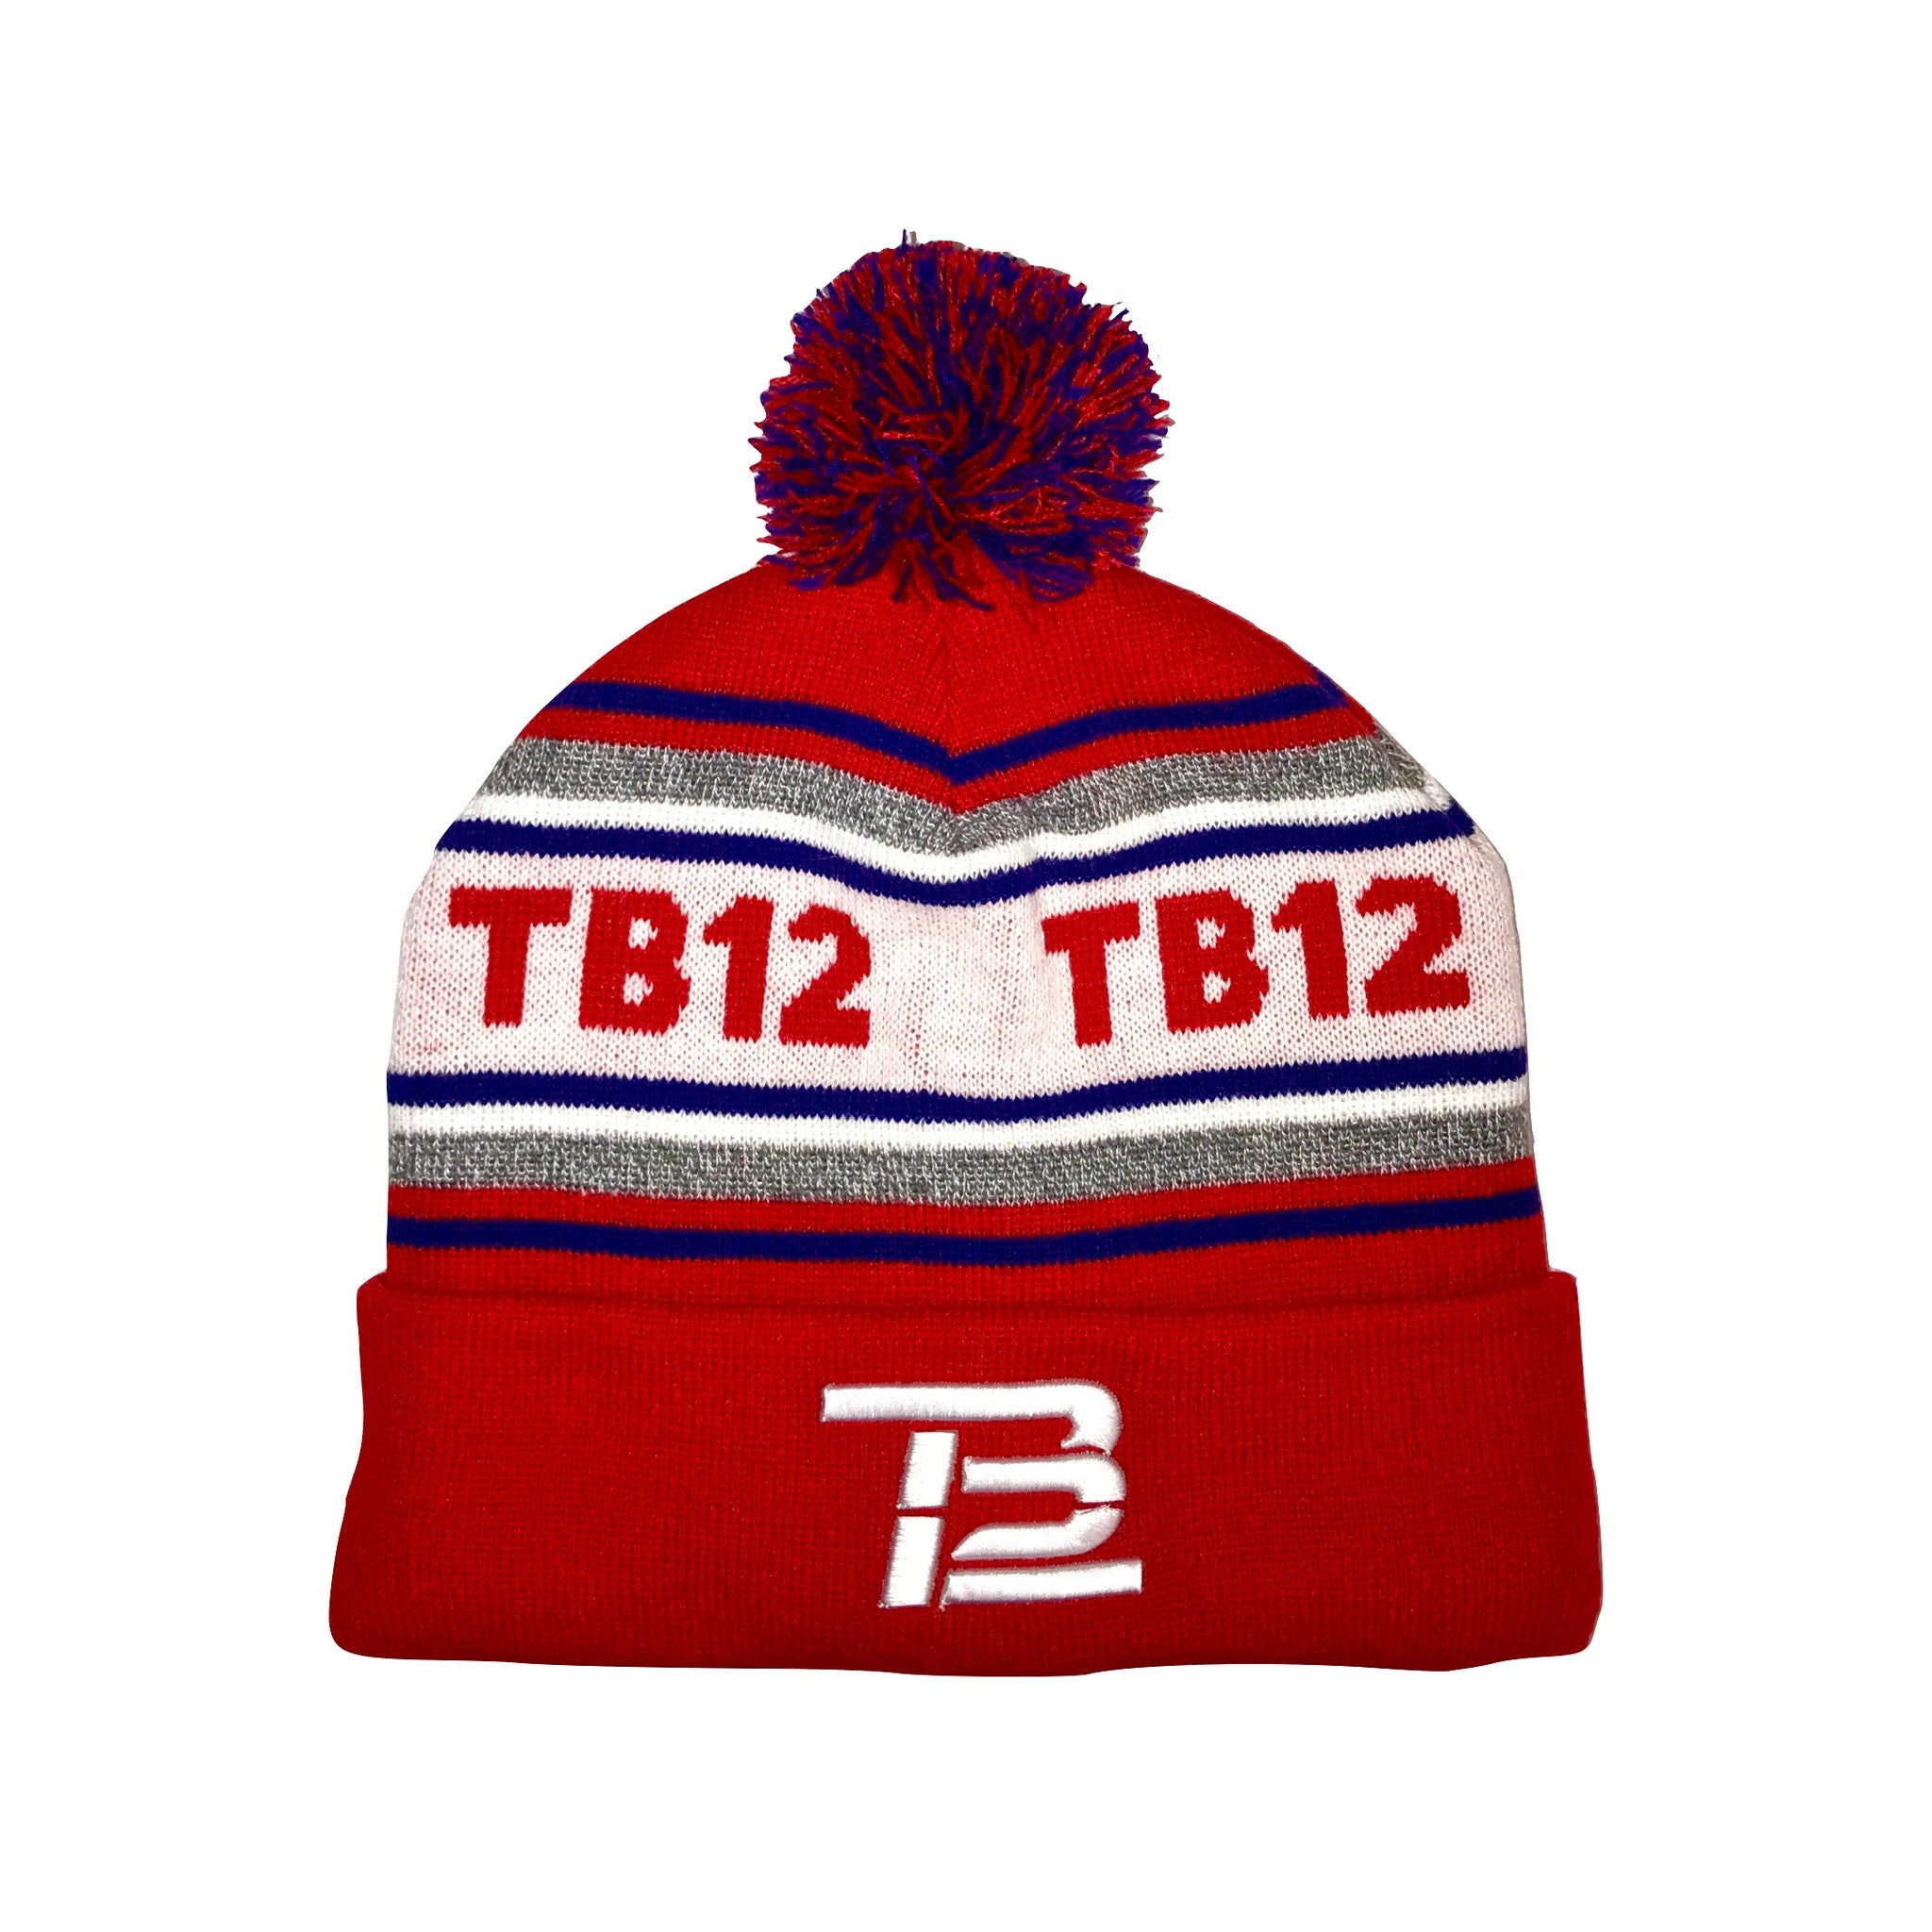 TB12™ Winter Hats